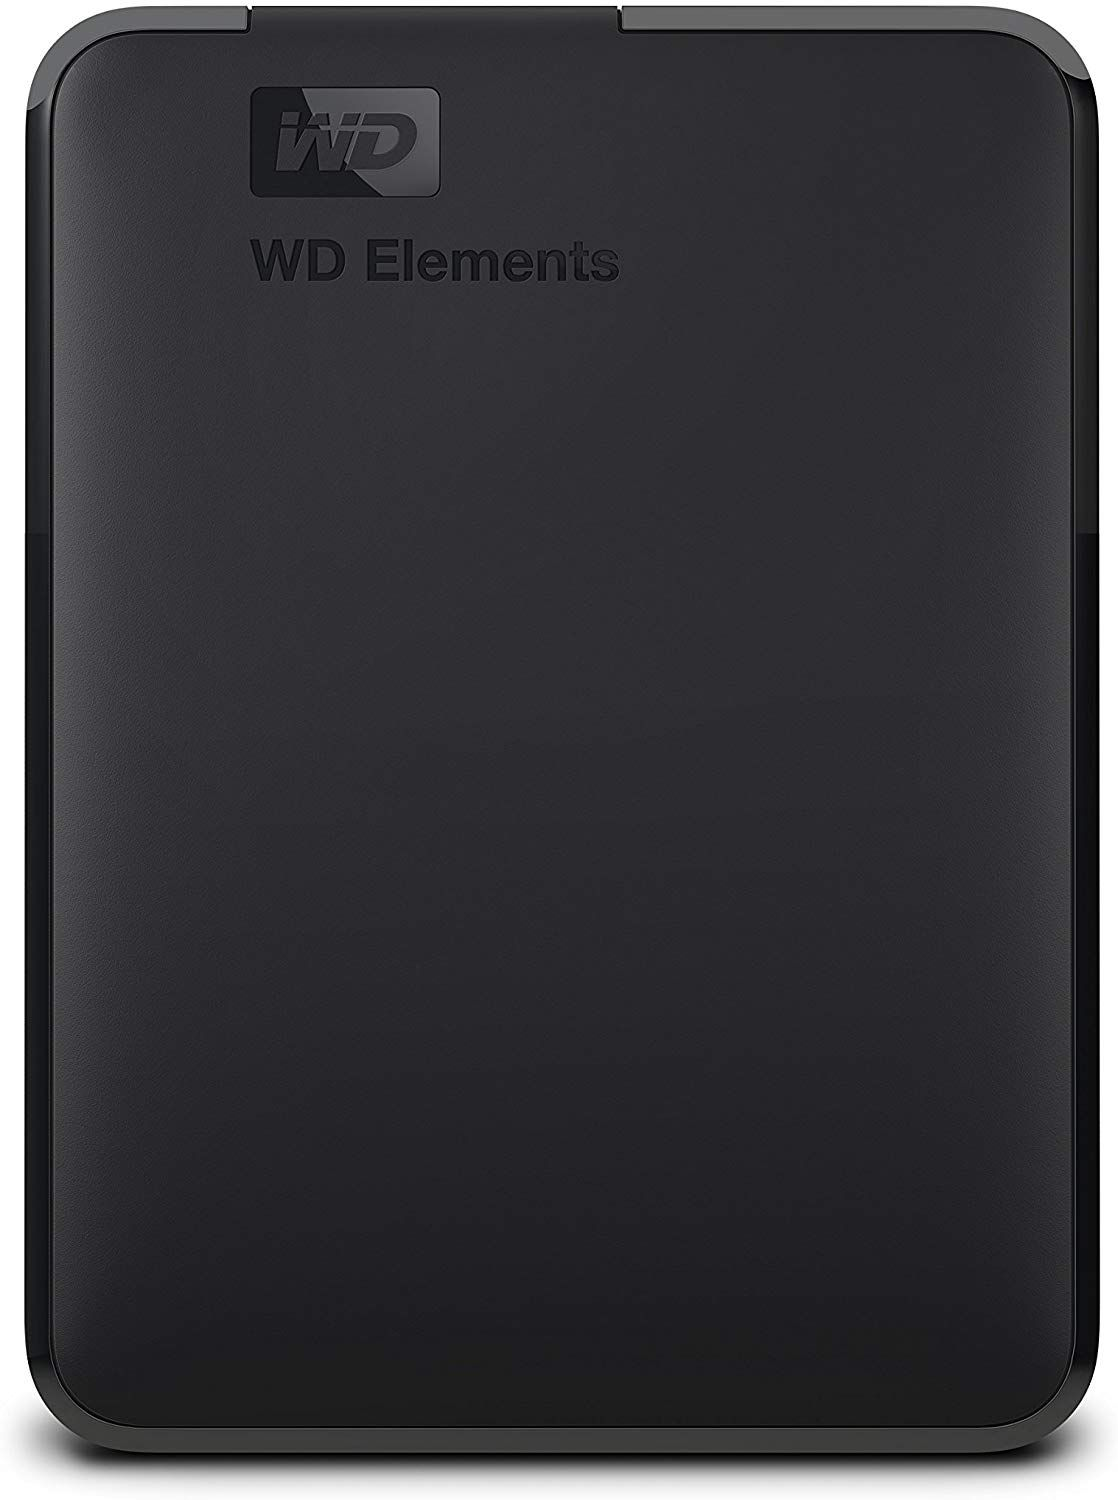 Check Out This Amazon Deal Wd 5tb Elements Portable External Hard Drive By Western D Portable External Hard Drive External Hard Drive Portable Hard Drives